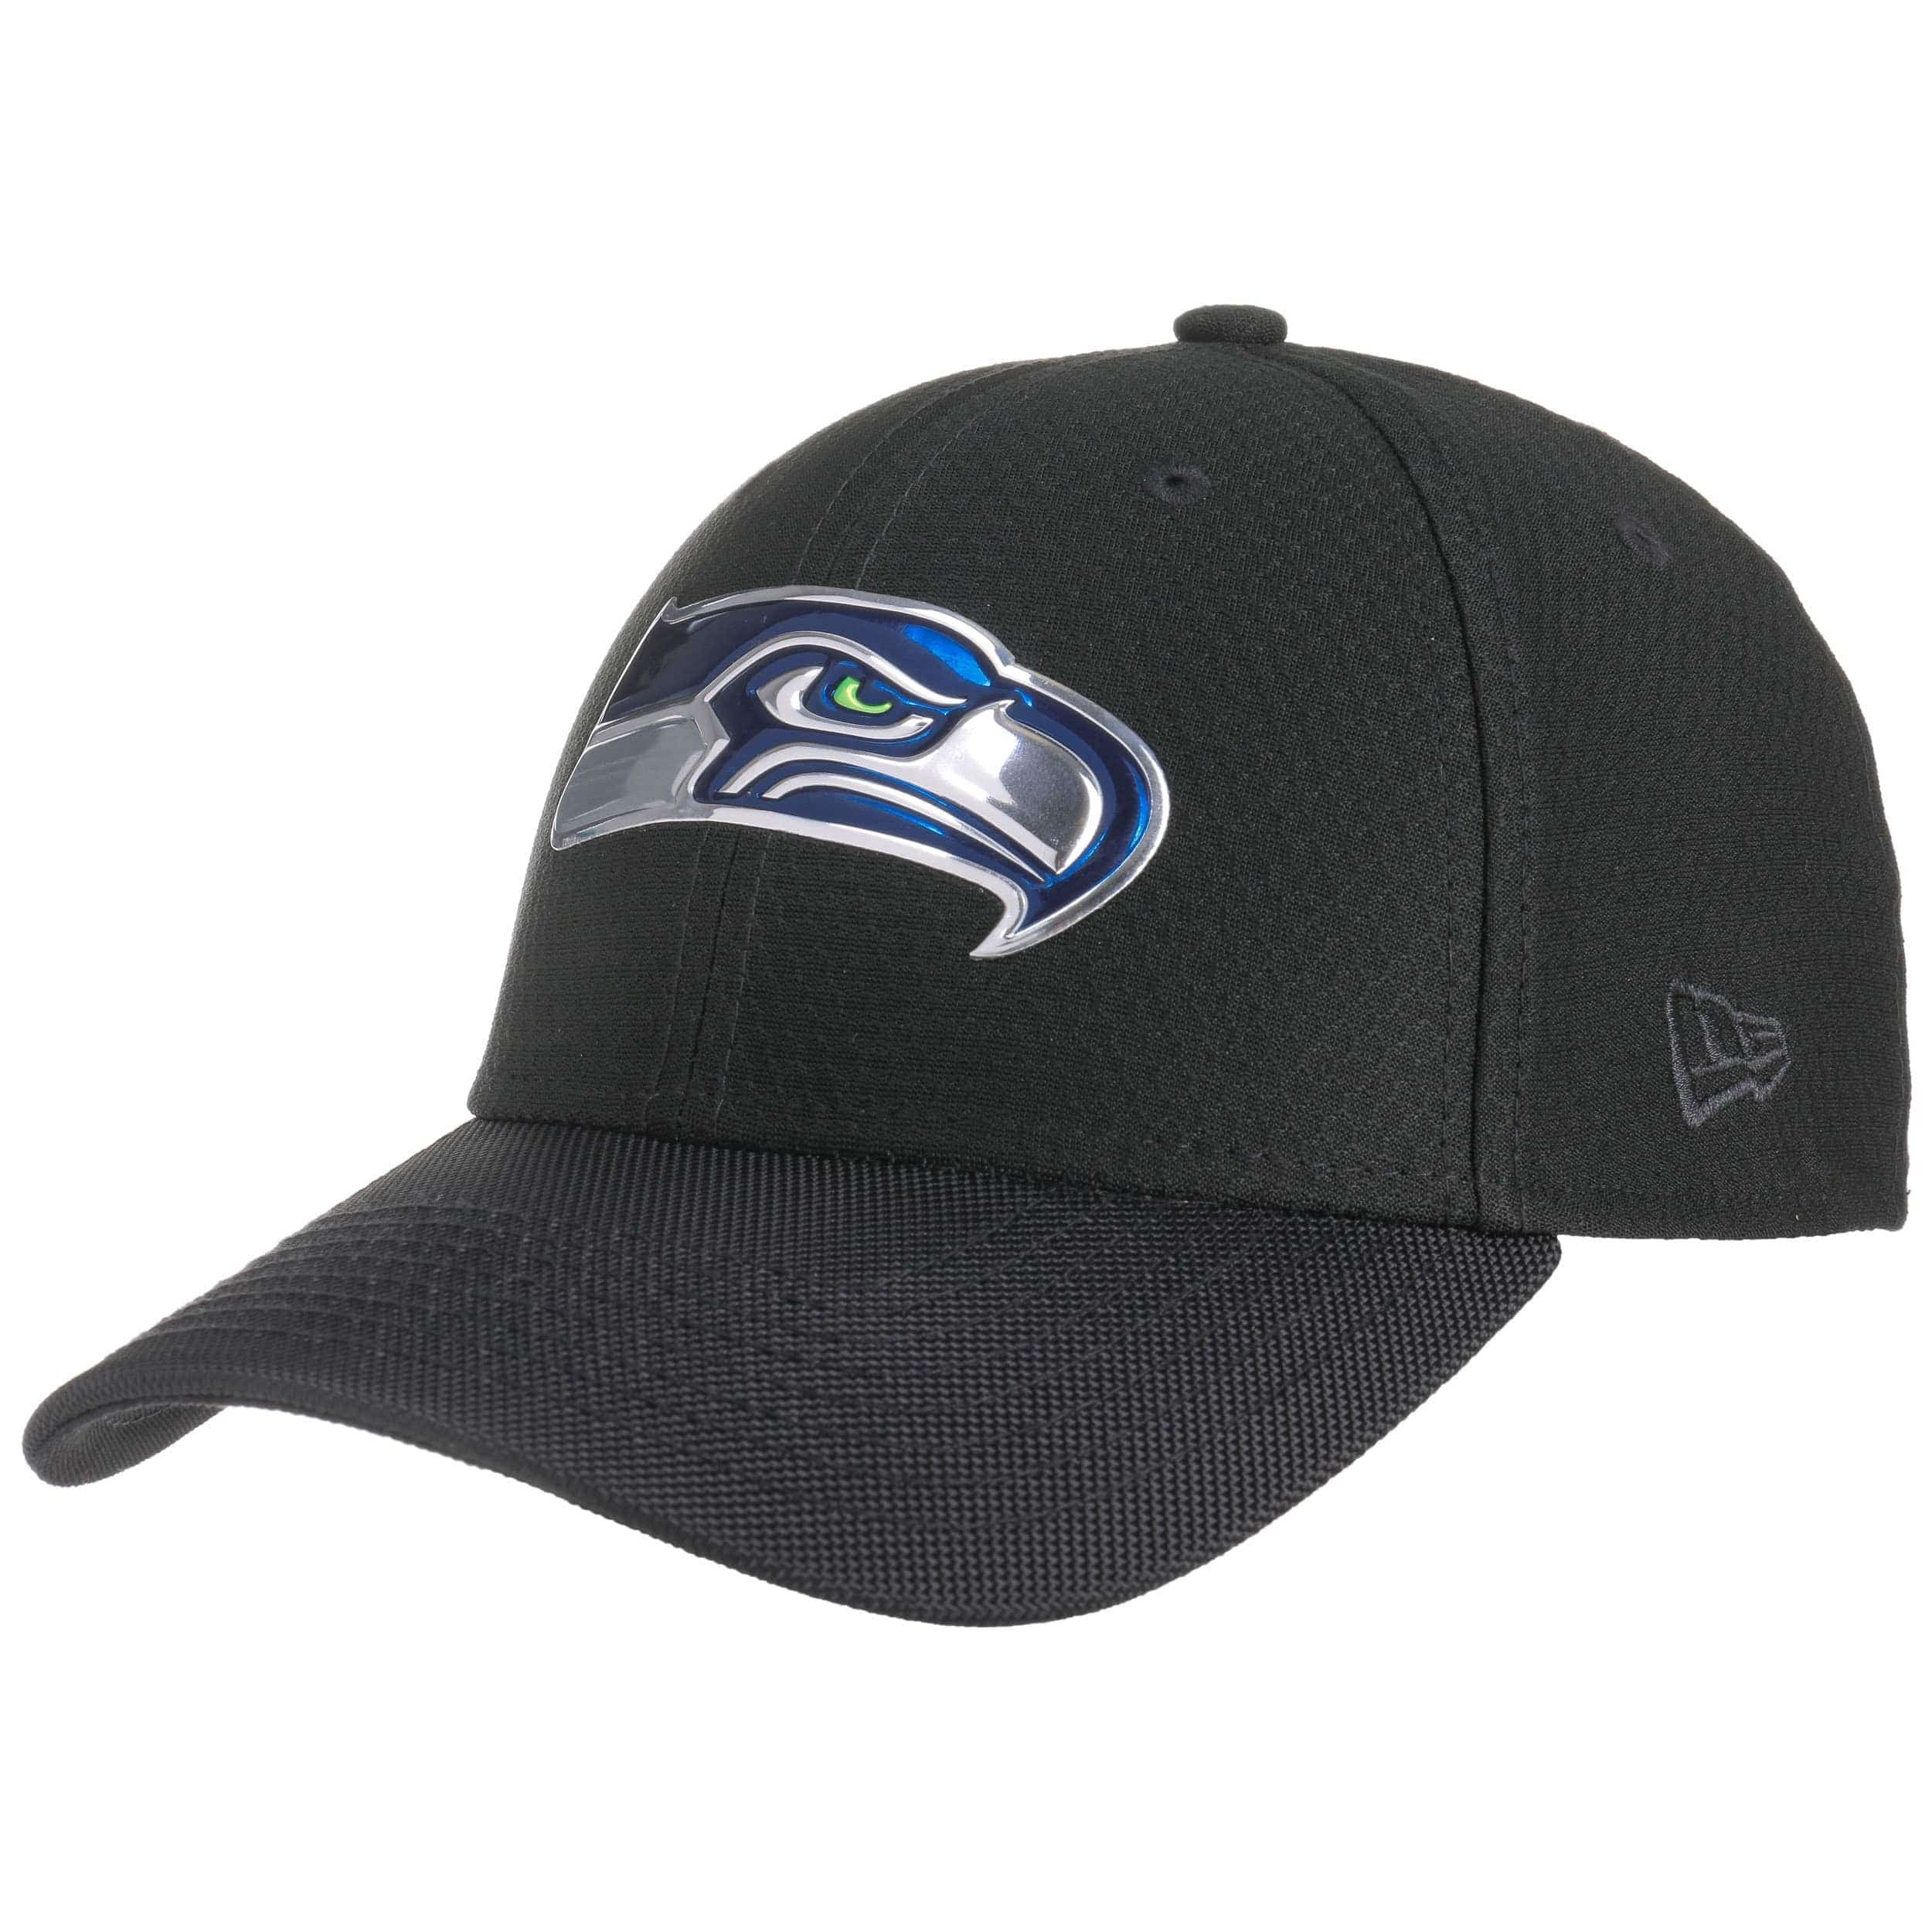 39Thirty NFL Coll Seahawks Cap by New Era, EUR 34,95 gt; Hats, caps  beanies shop online